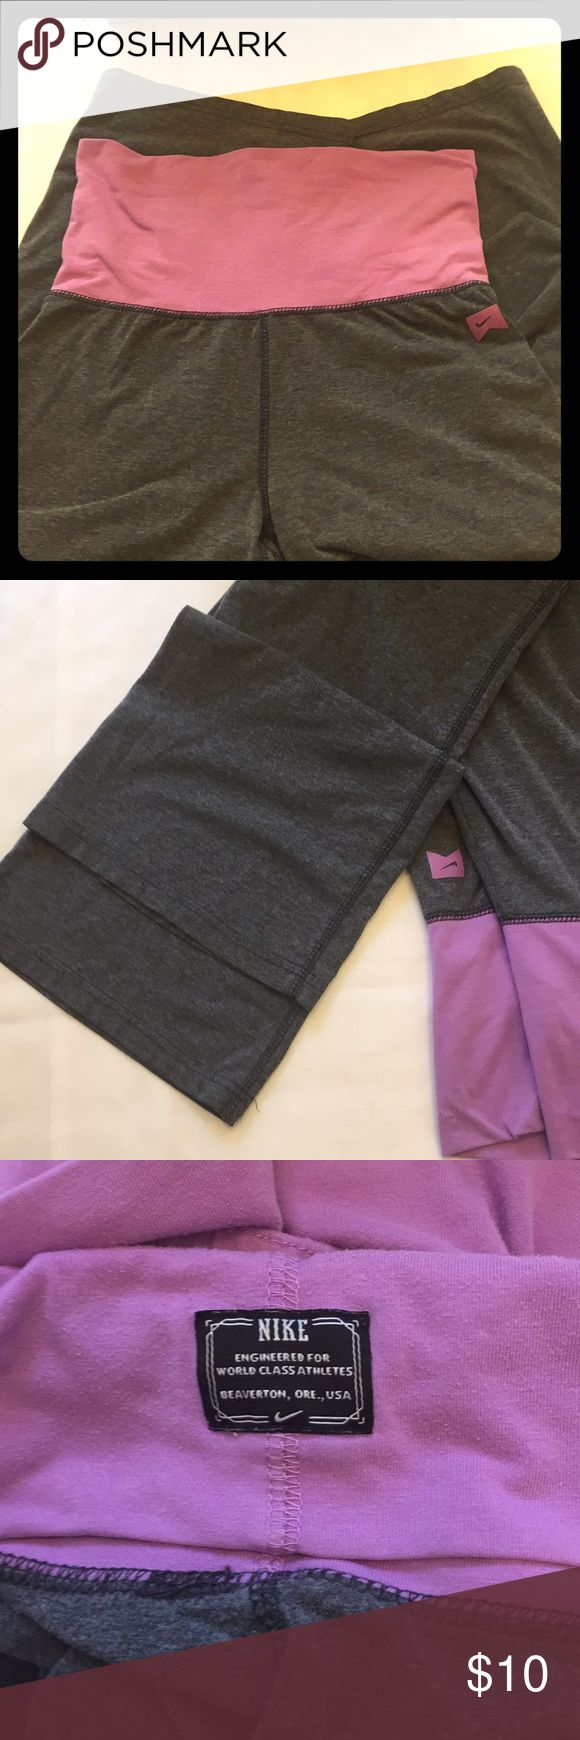 Nike Women's Yoga Pants (L) Grey and violet colored Nike yoga pants!!🌟 In excellent condition no wear/tear/flaws to report. Worn once. Nike Other